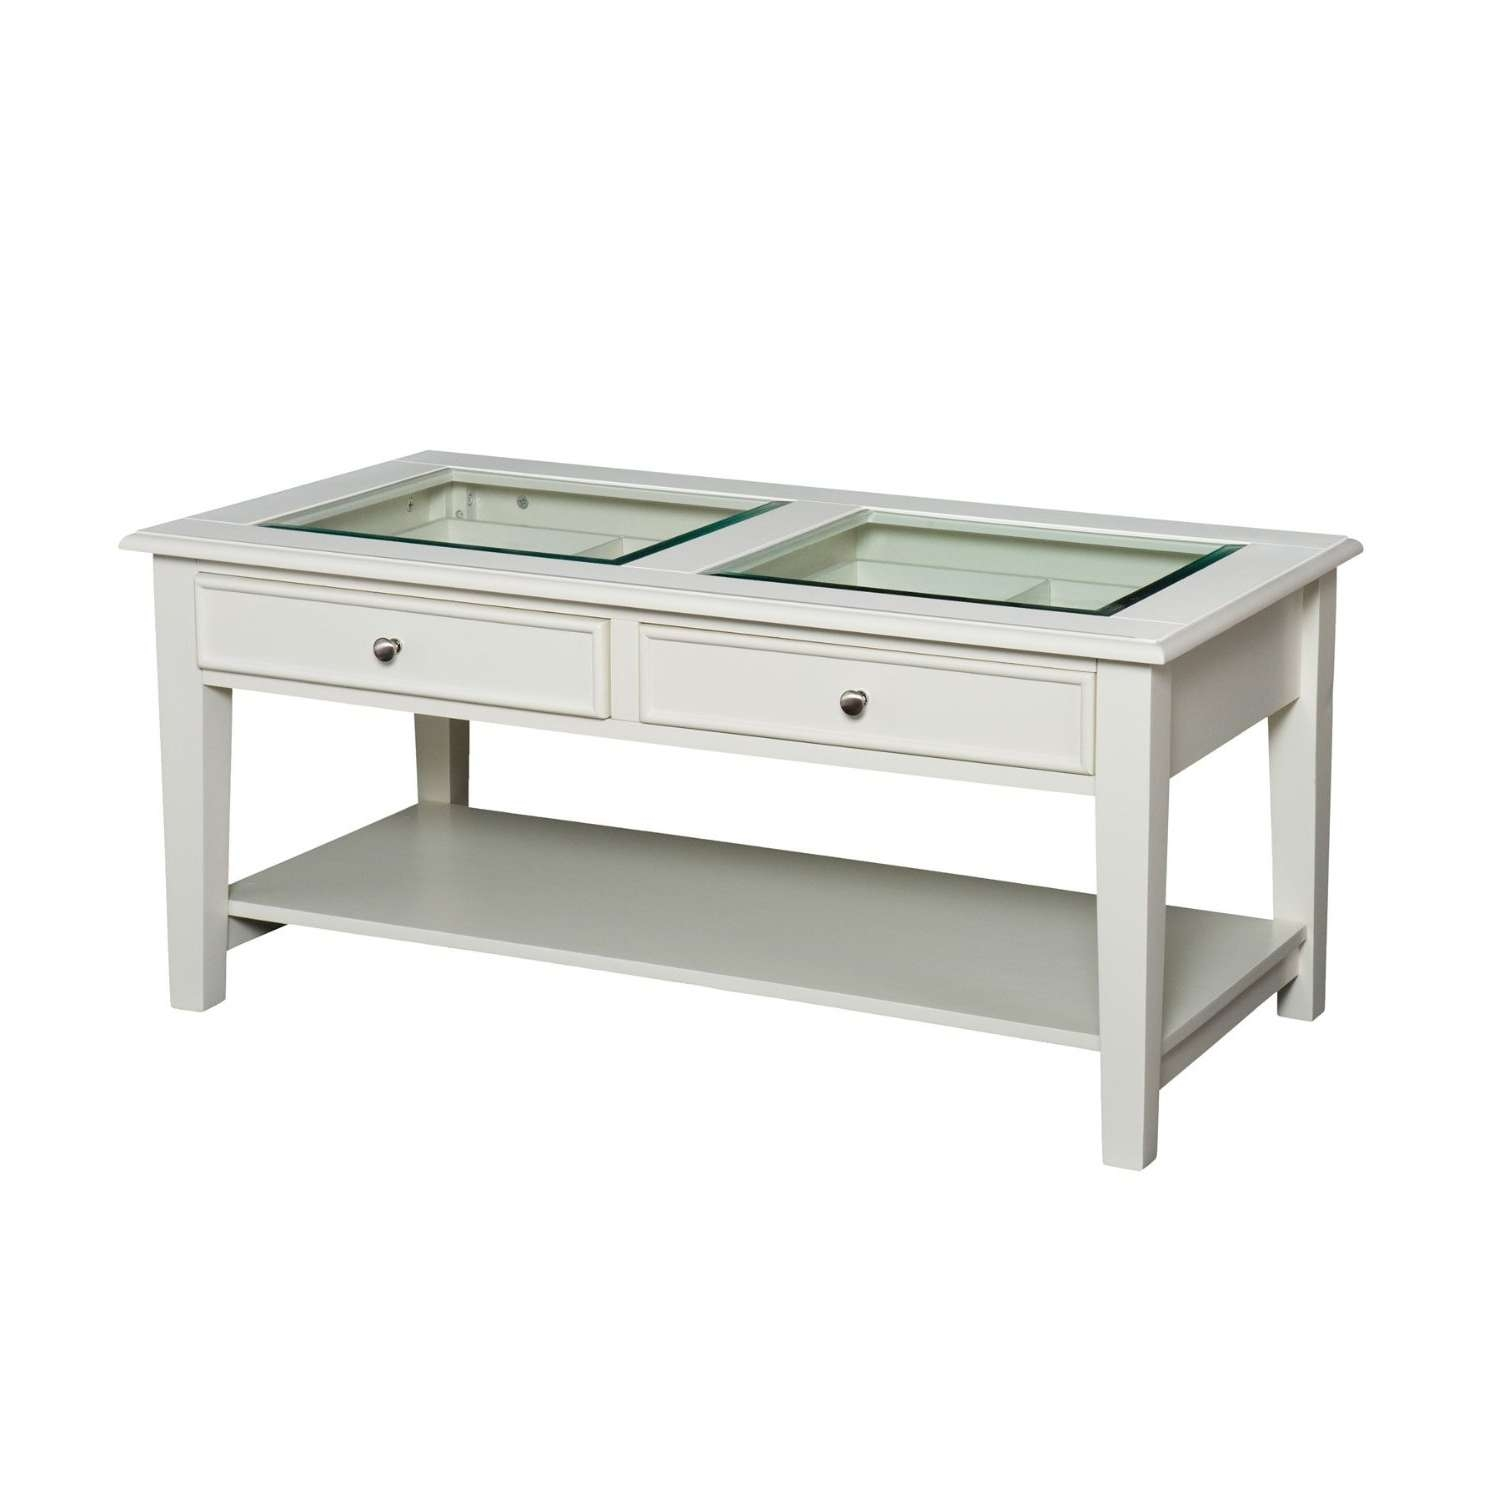 2017 Glass Top Storage Coffee Tables With Regard To Coffee Tables : Outdoor Glass Coffee Table Rectangle With Top (View 4 of 20)